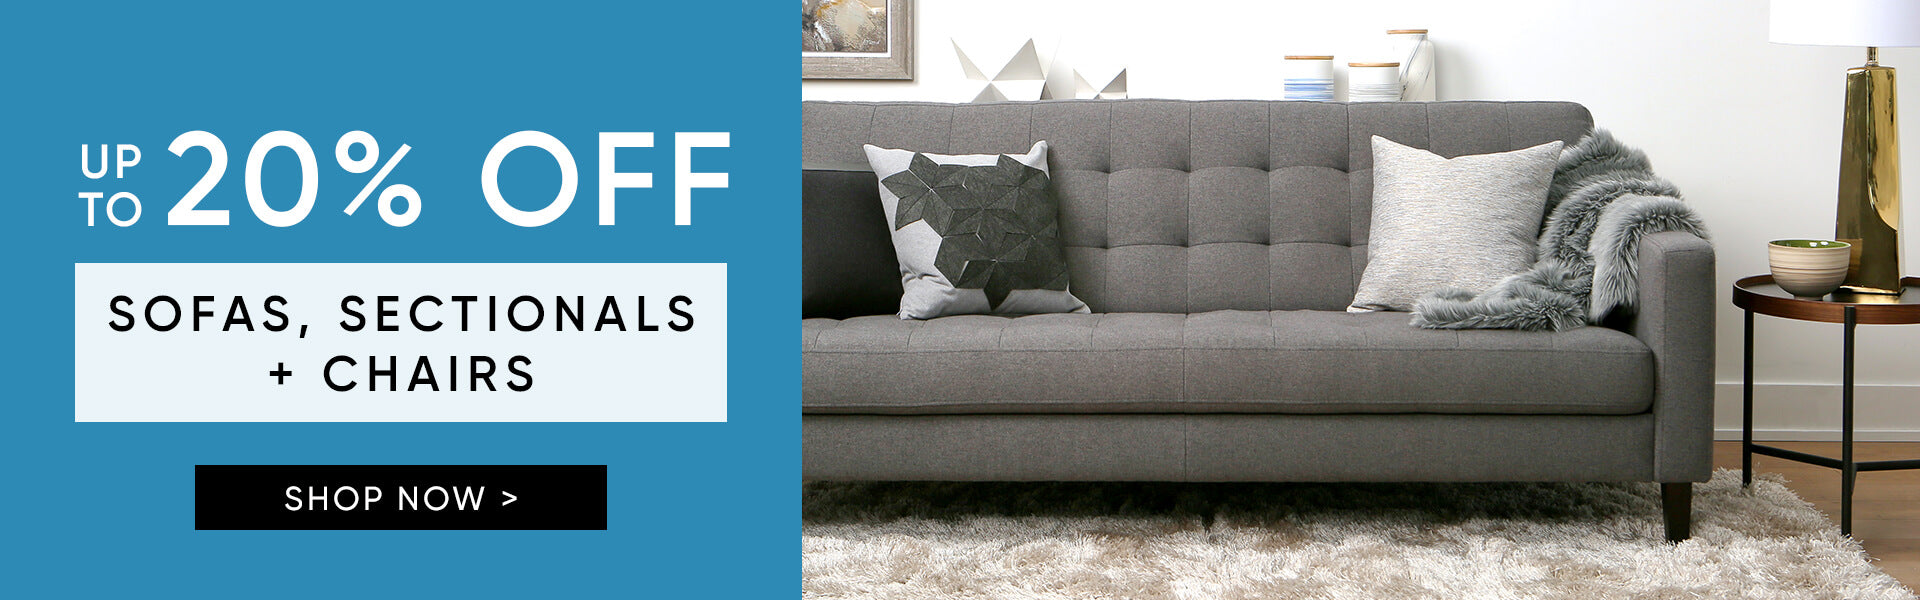 Up to 20% off Sofas, Sectionals, and Chairs